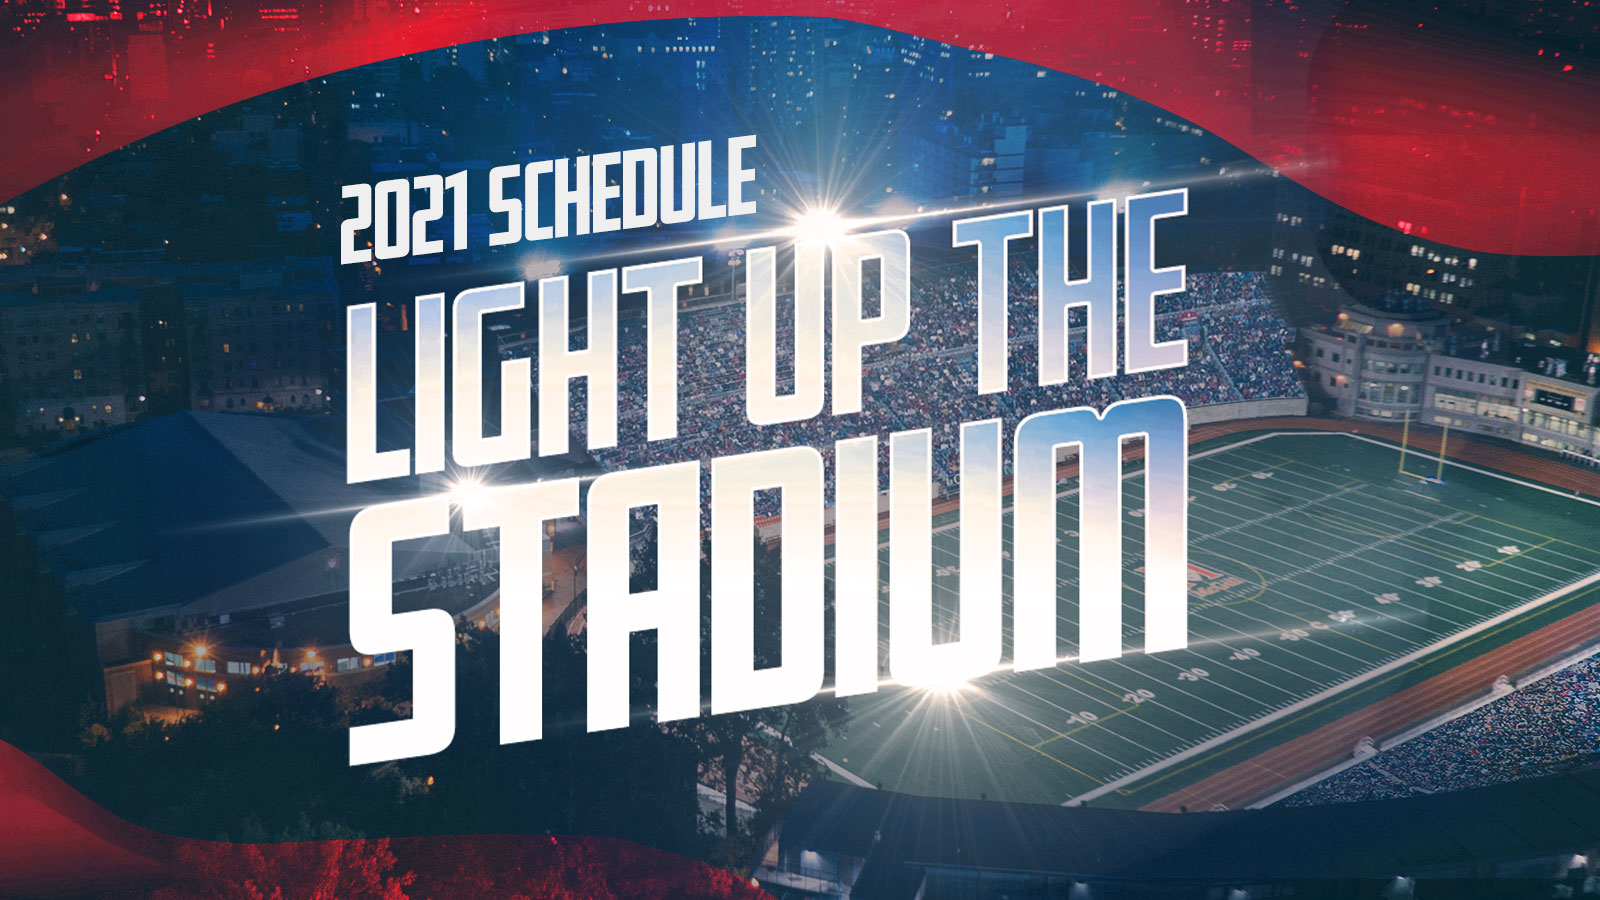 The 2021 Schedule Is Available!